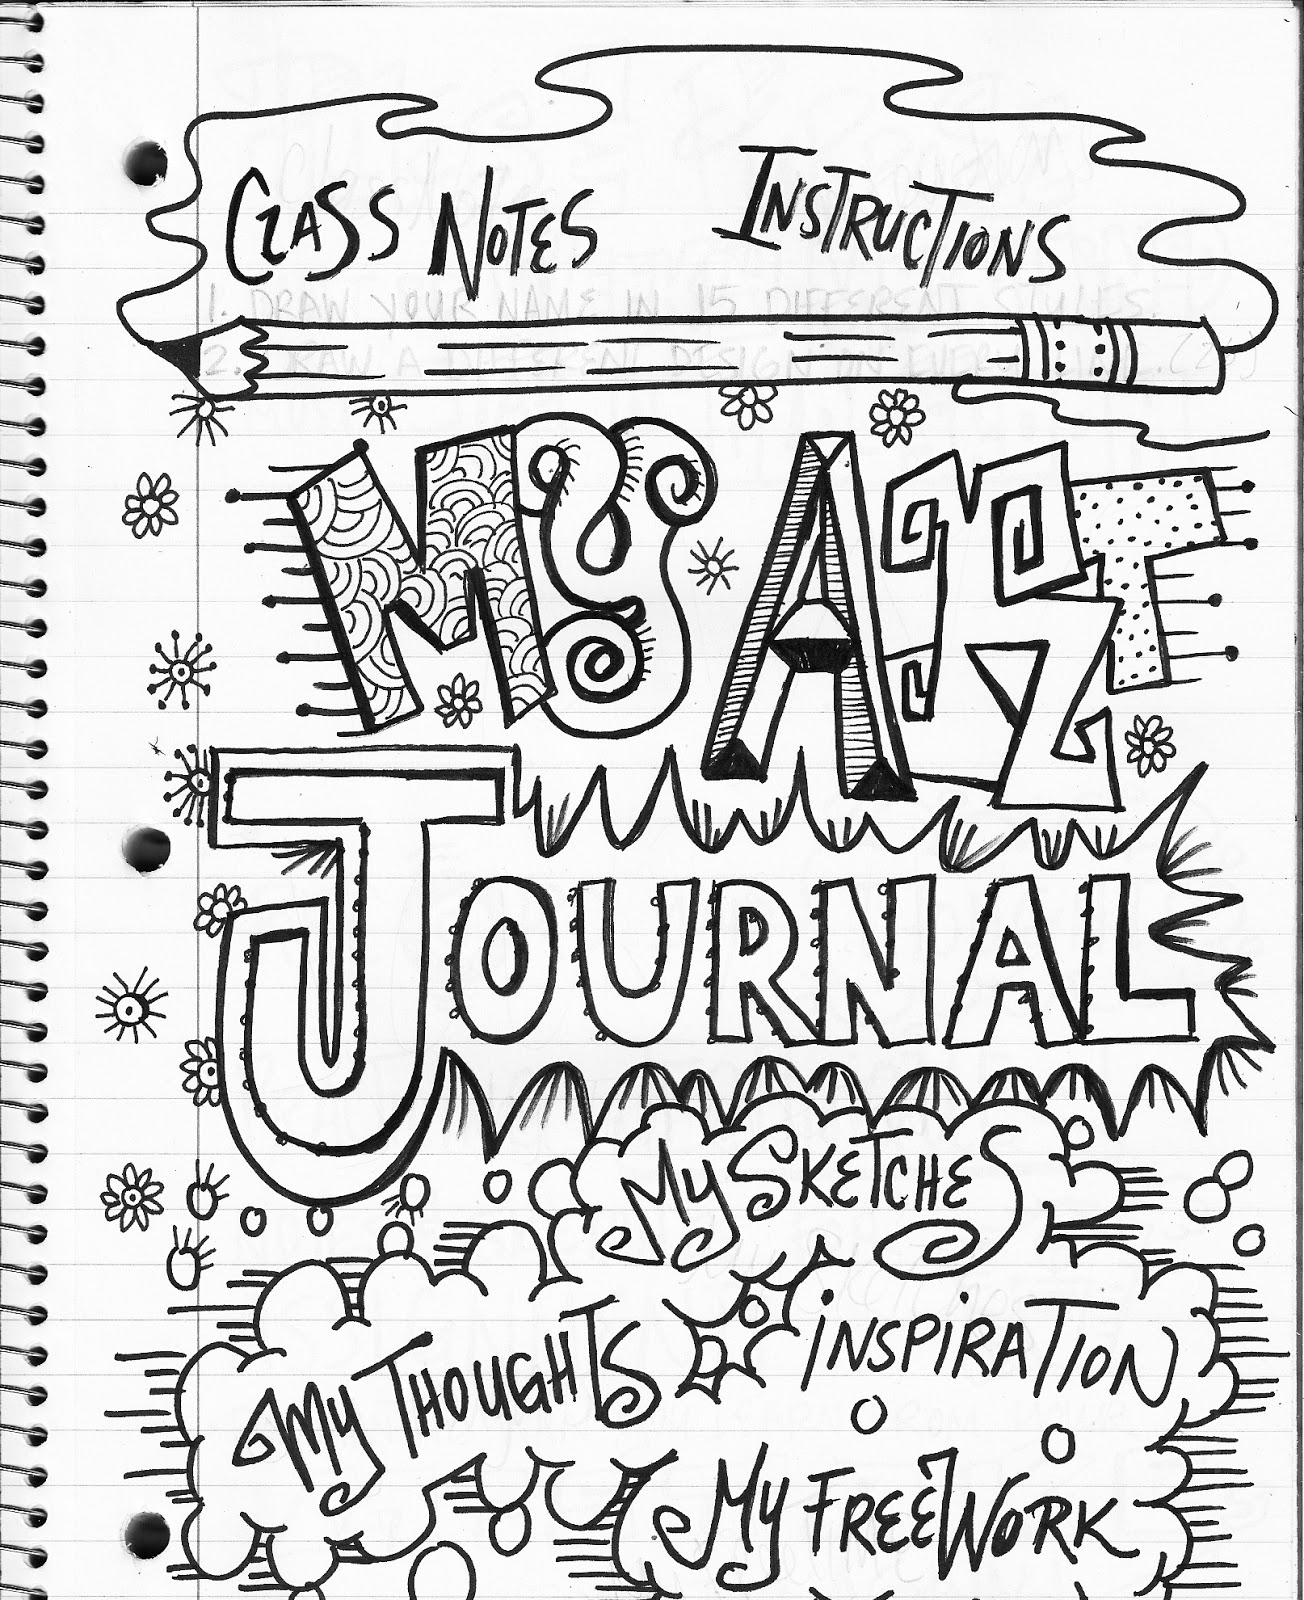 Classroom Design Journal Articles ~ The lost sock art class journaling